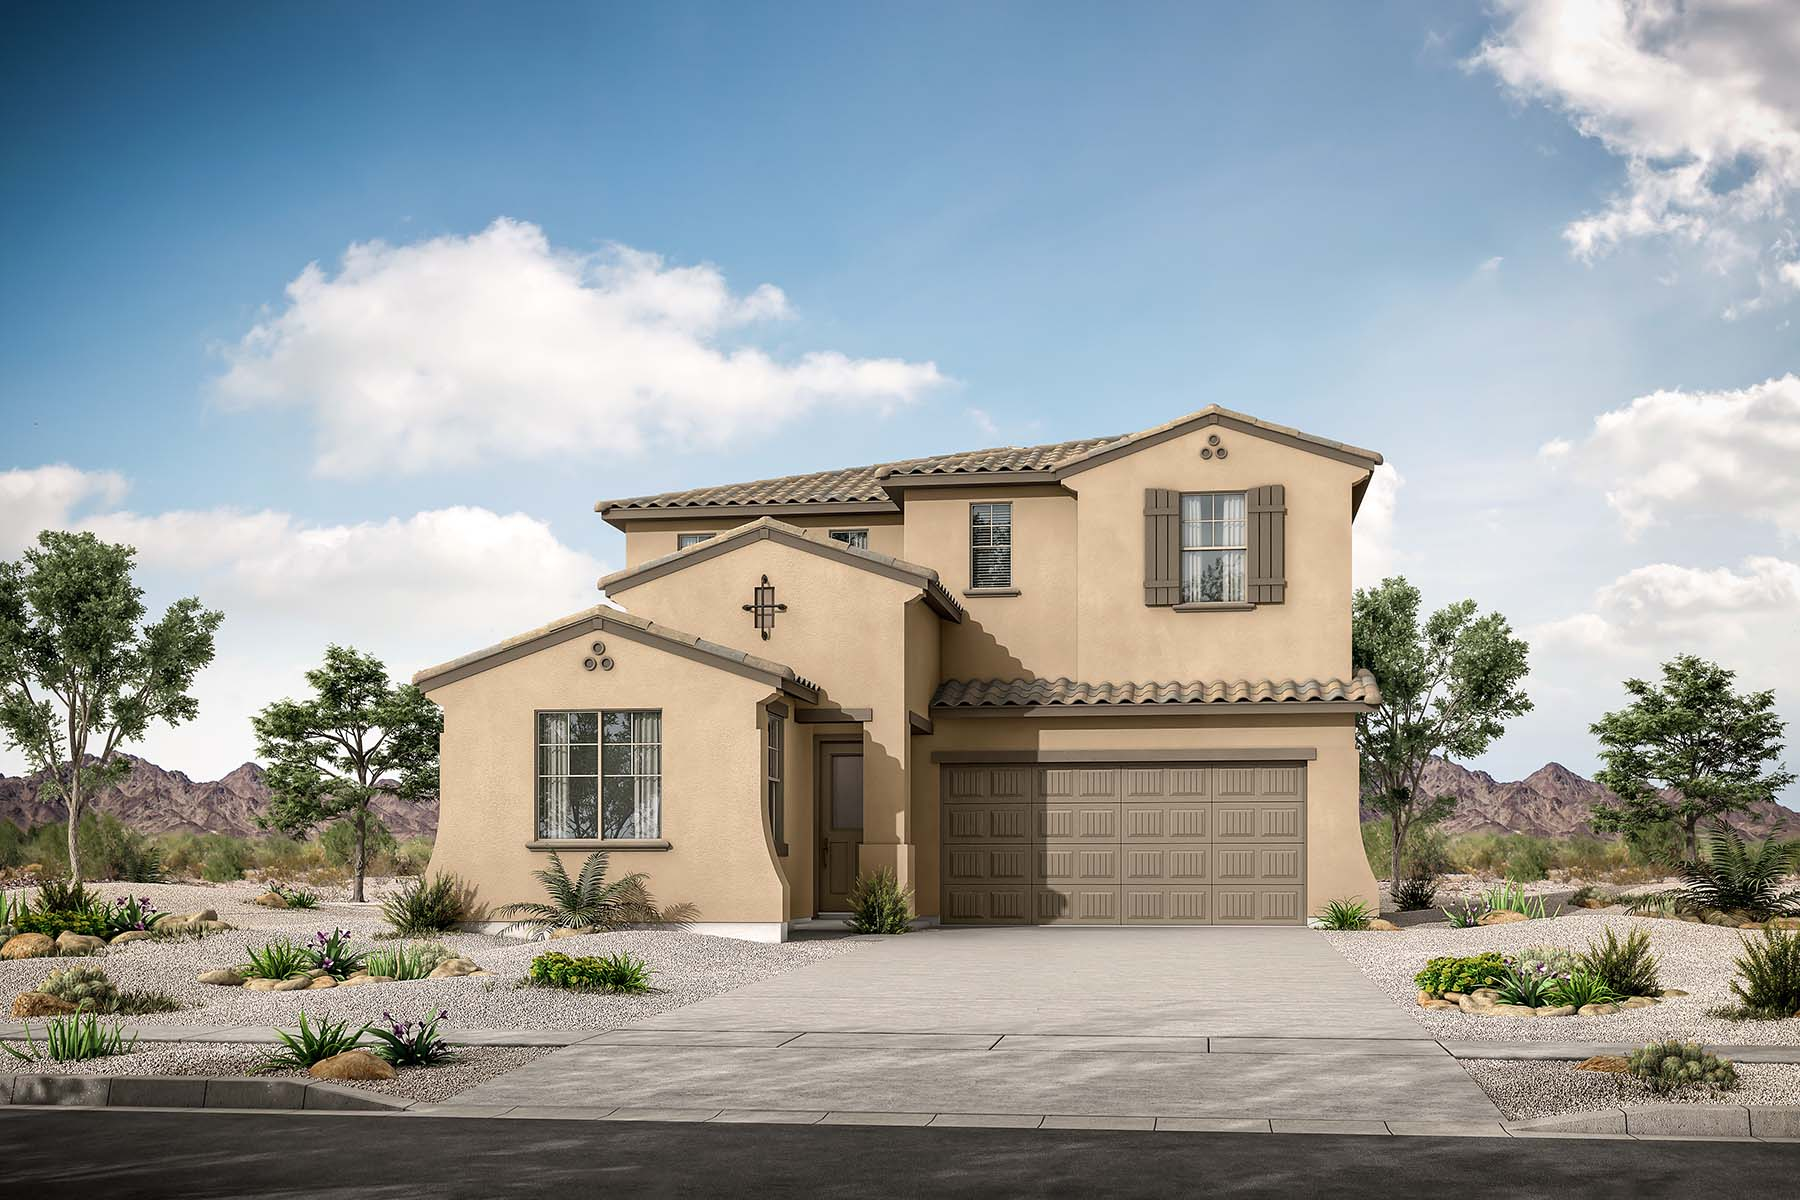 Micah Plan  at Vista Diamante at Camelback Ranch in Phoenix Arizona by Mattamy Homes